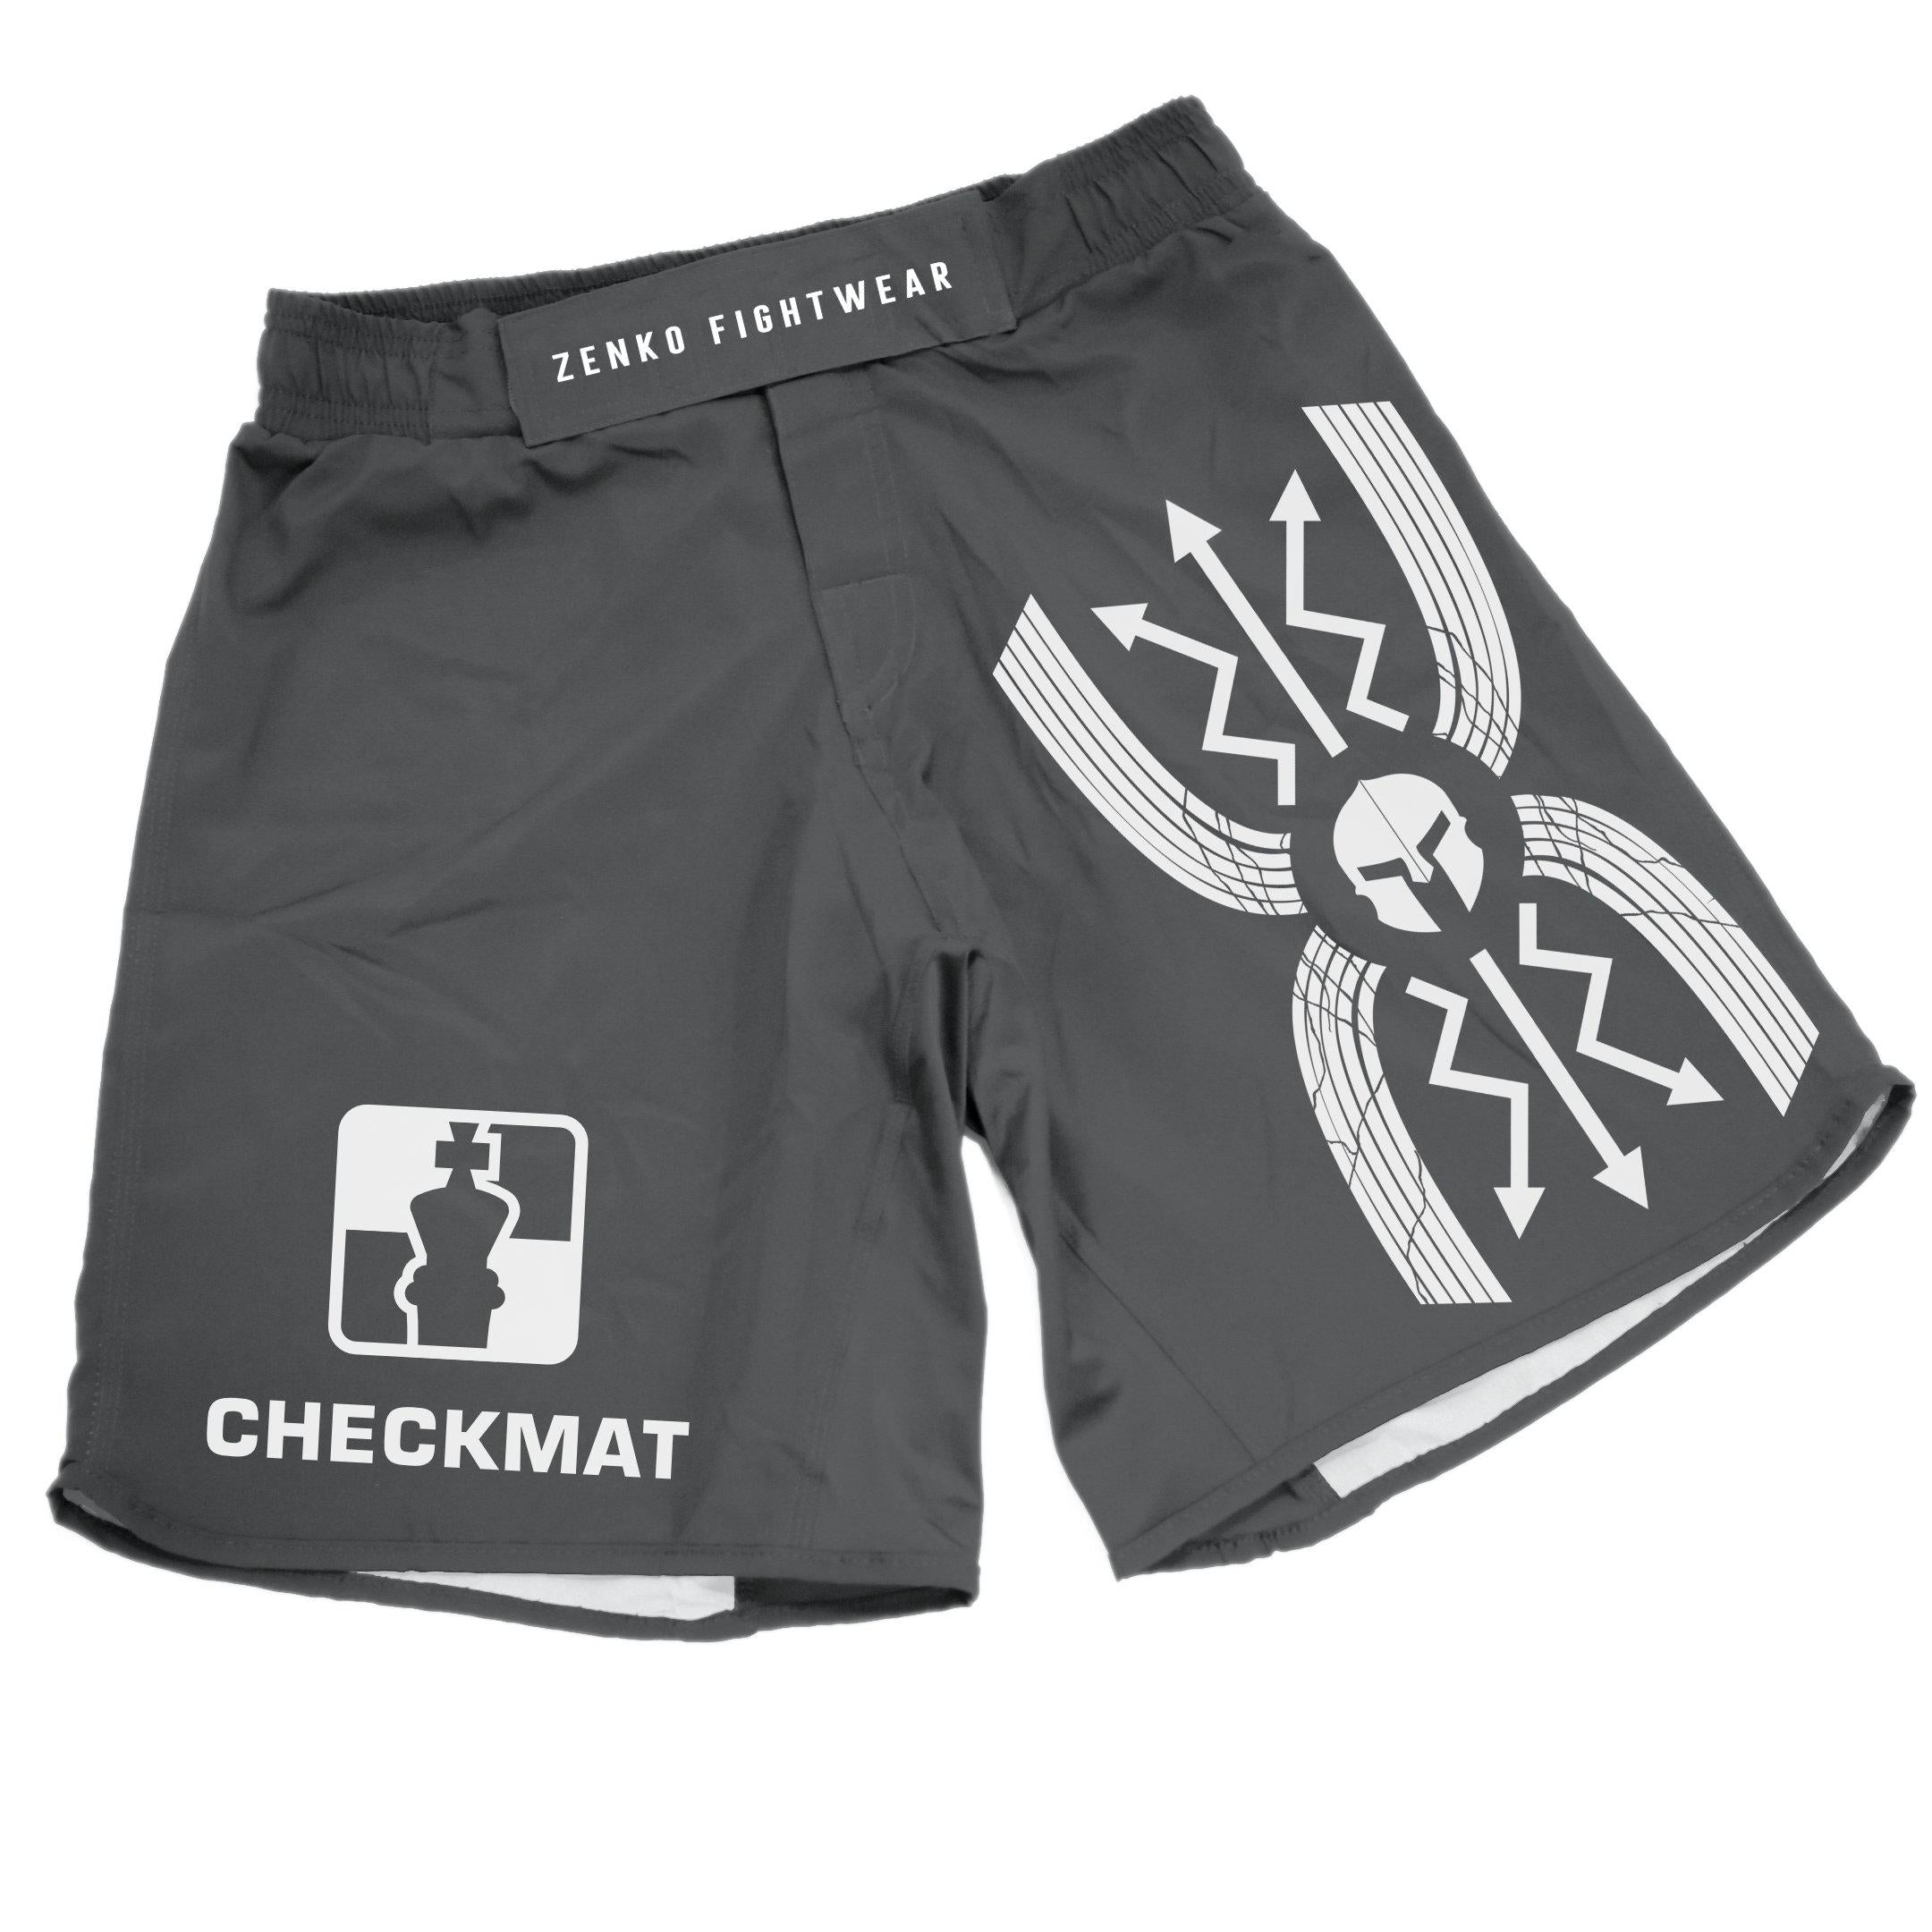 Legion Jiu Jitsu Grappling Shorts (Gray) Zenko Fightwear